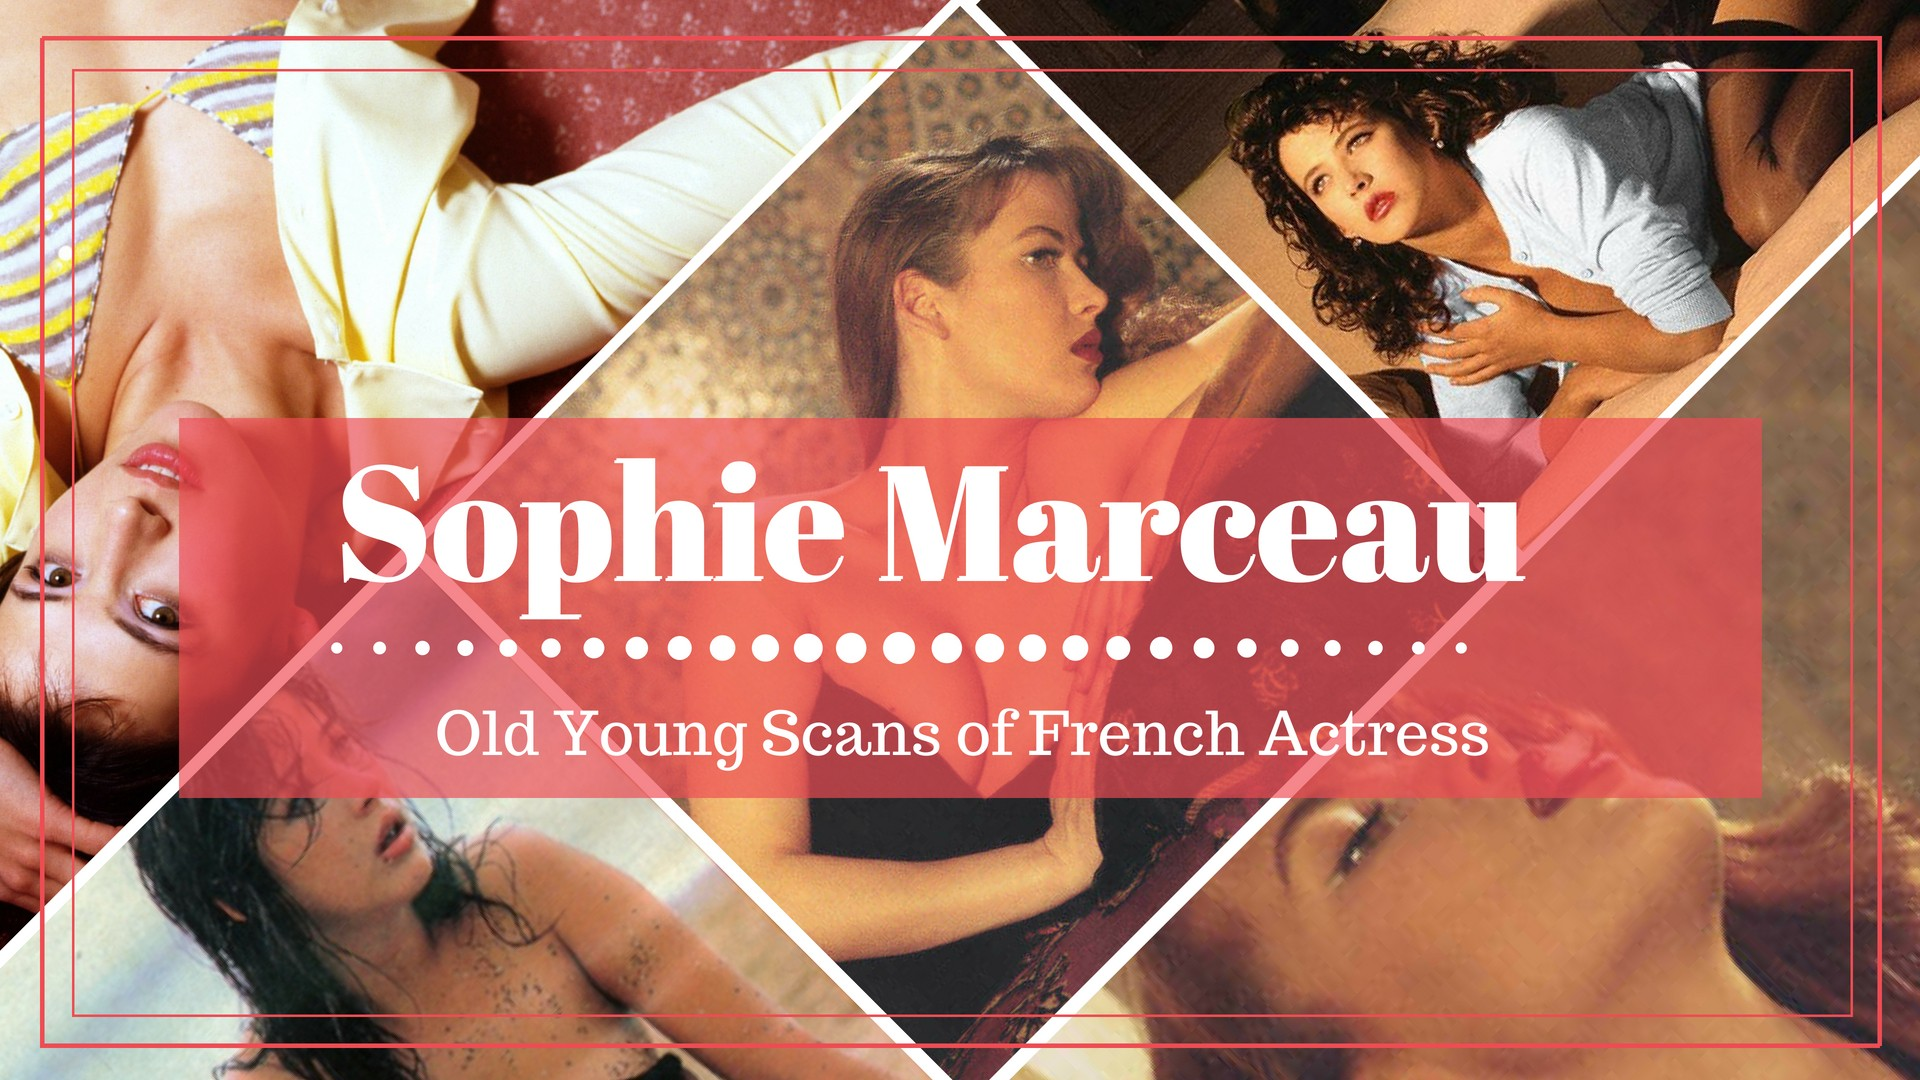 Young Looking Sophie Marceau Photo Collections - Sexy Actress Pictures | Hot Actress Pictures - ActressSnaps.com